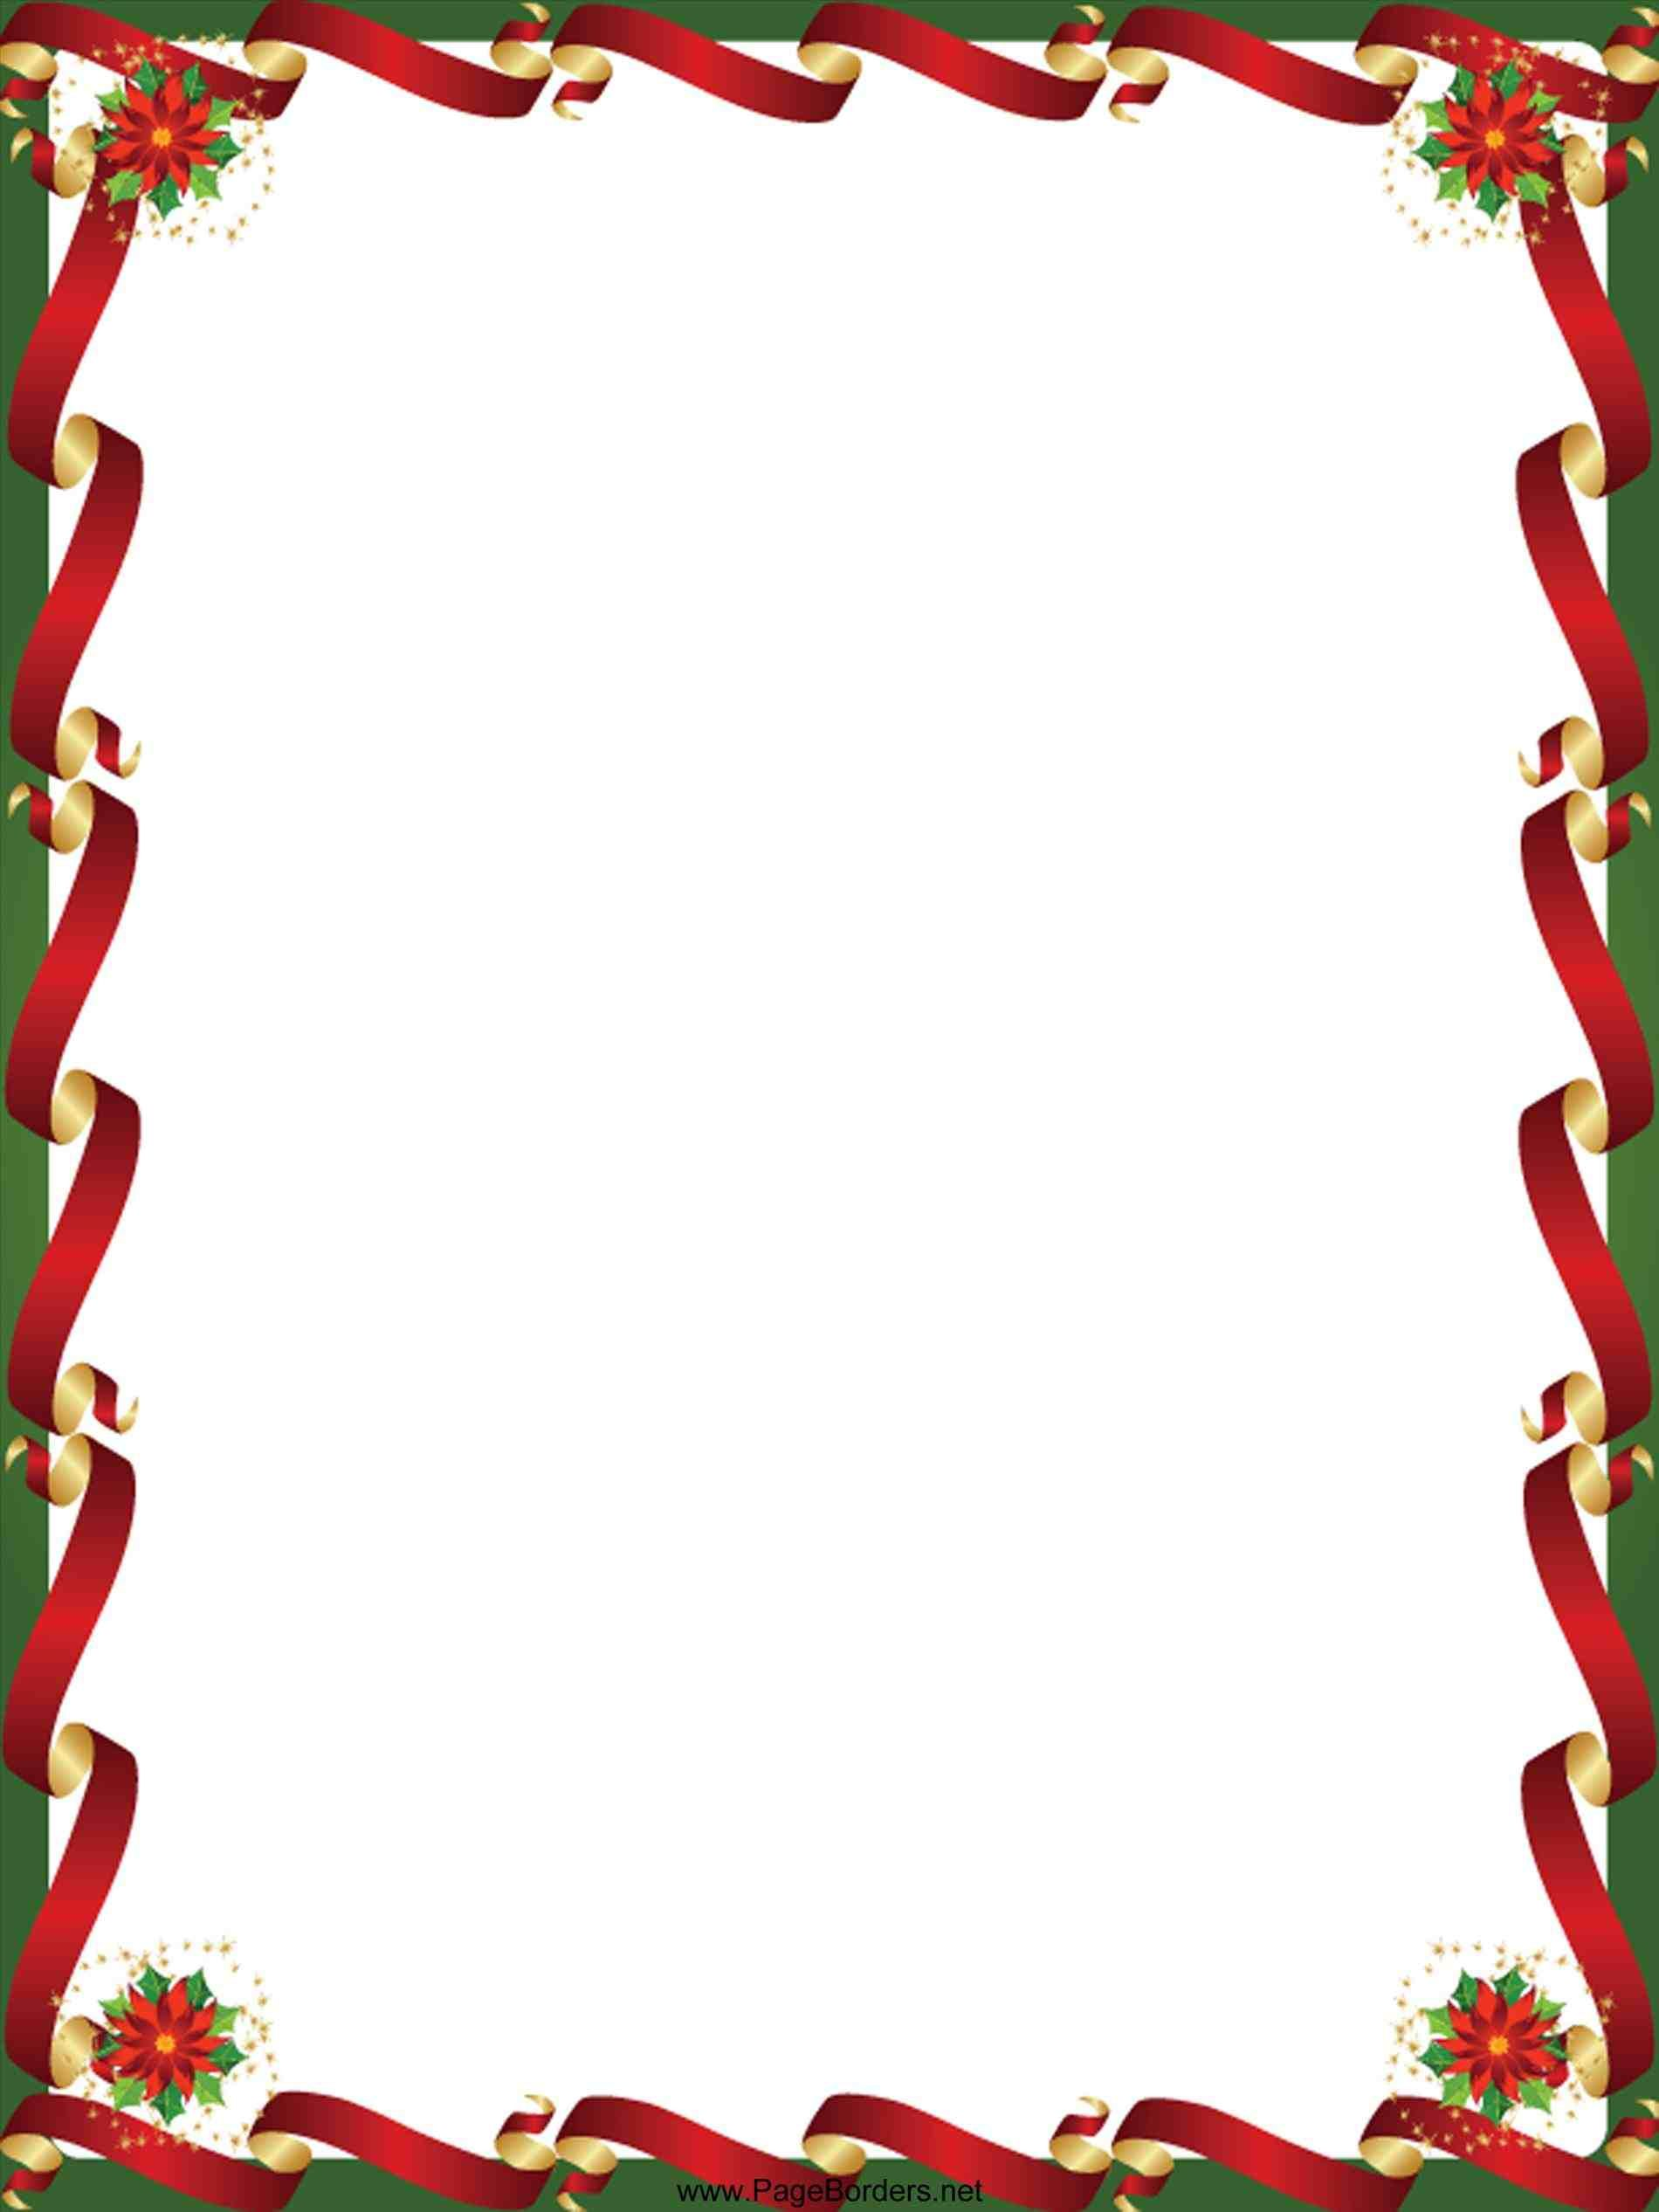 This Free Christmas Border Templates Hy New Year Wallpapers Will Decorate Your Computer Desktops With Celebration Cheerfulness And Joy